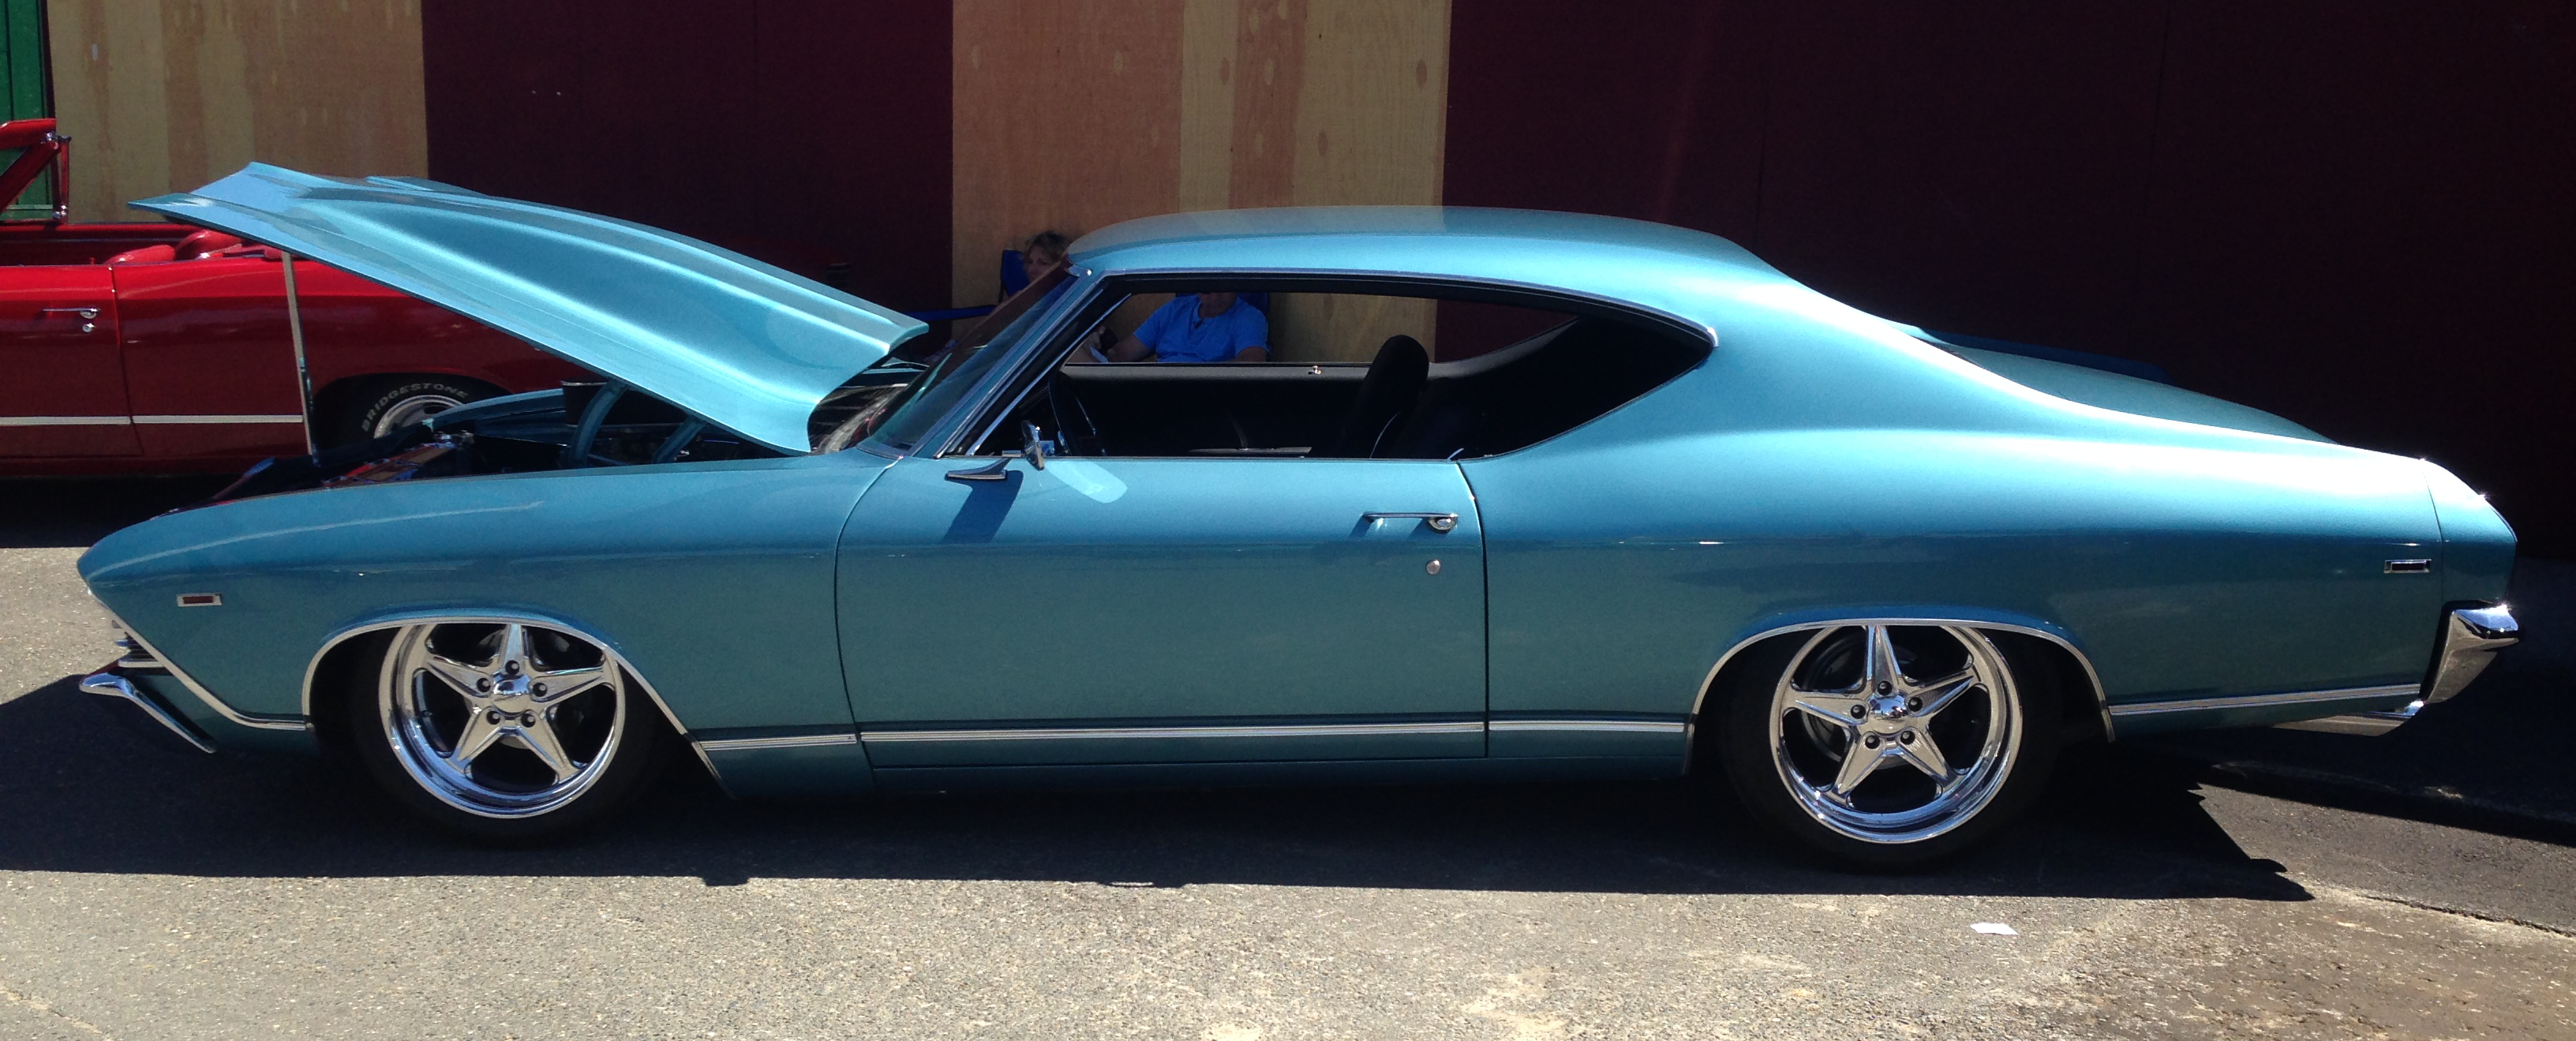 Light Blue Pro Touring Chevelle PIC